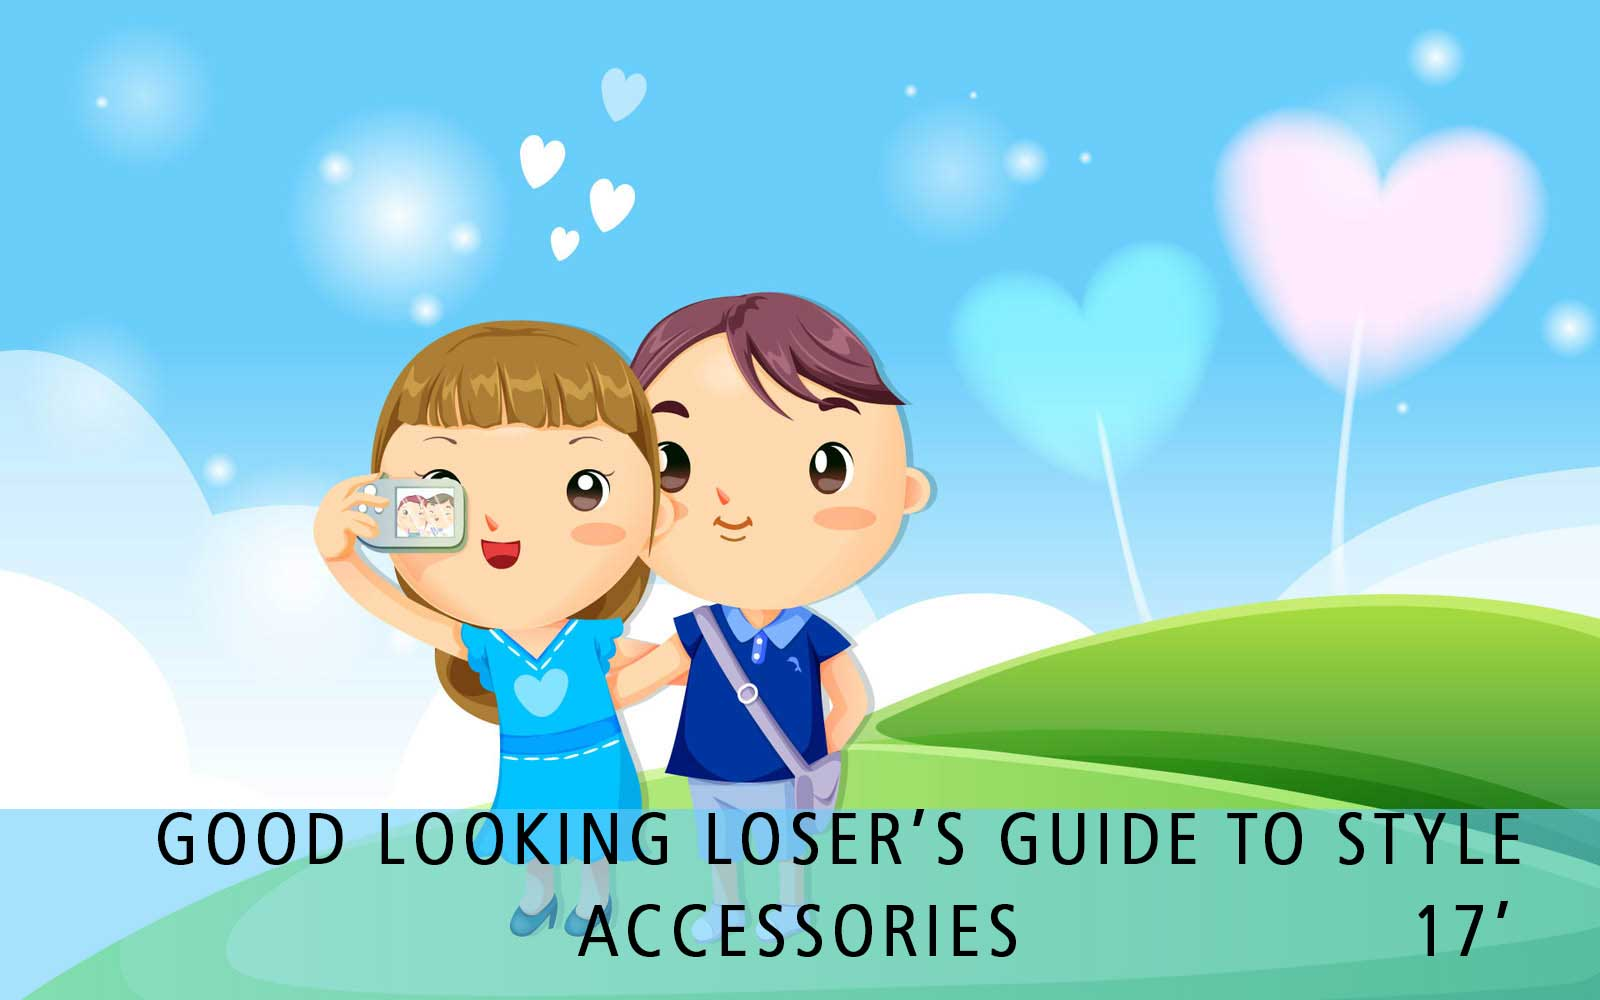 Good Looking Loser's Summer 2017 Guide to Style (Accessories)